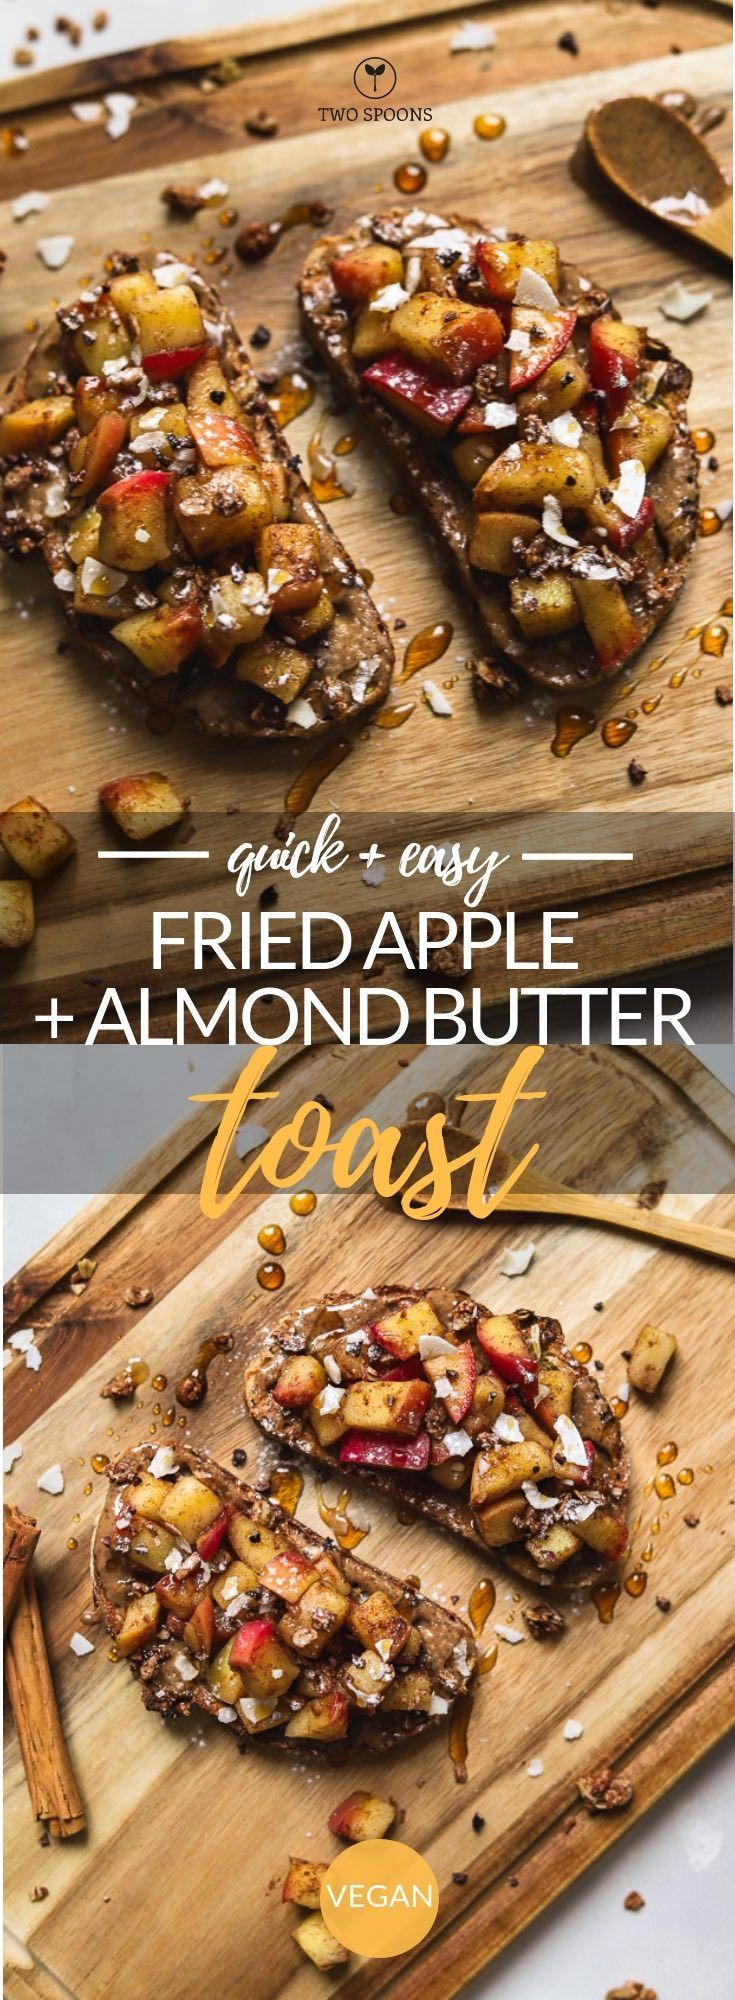 Fried Apple and Almond Butter Toast images